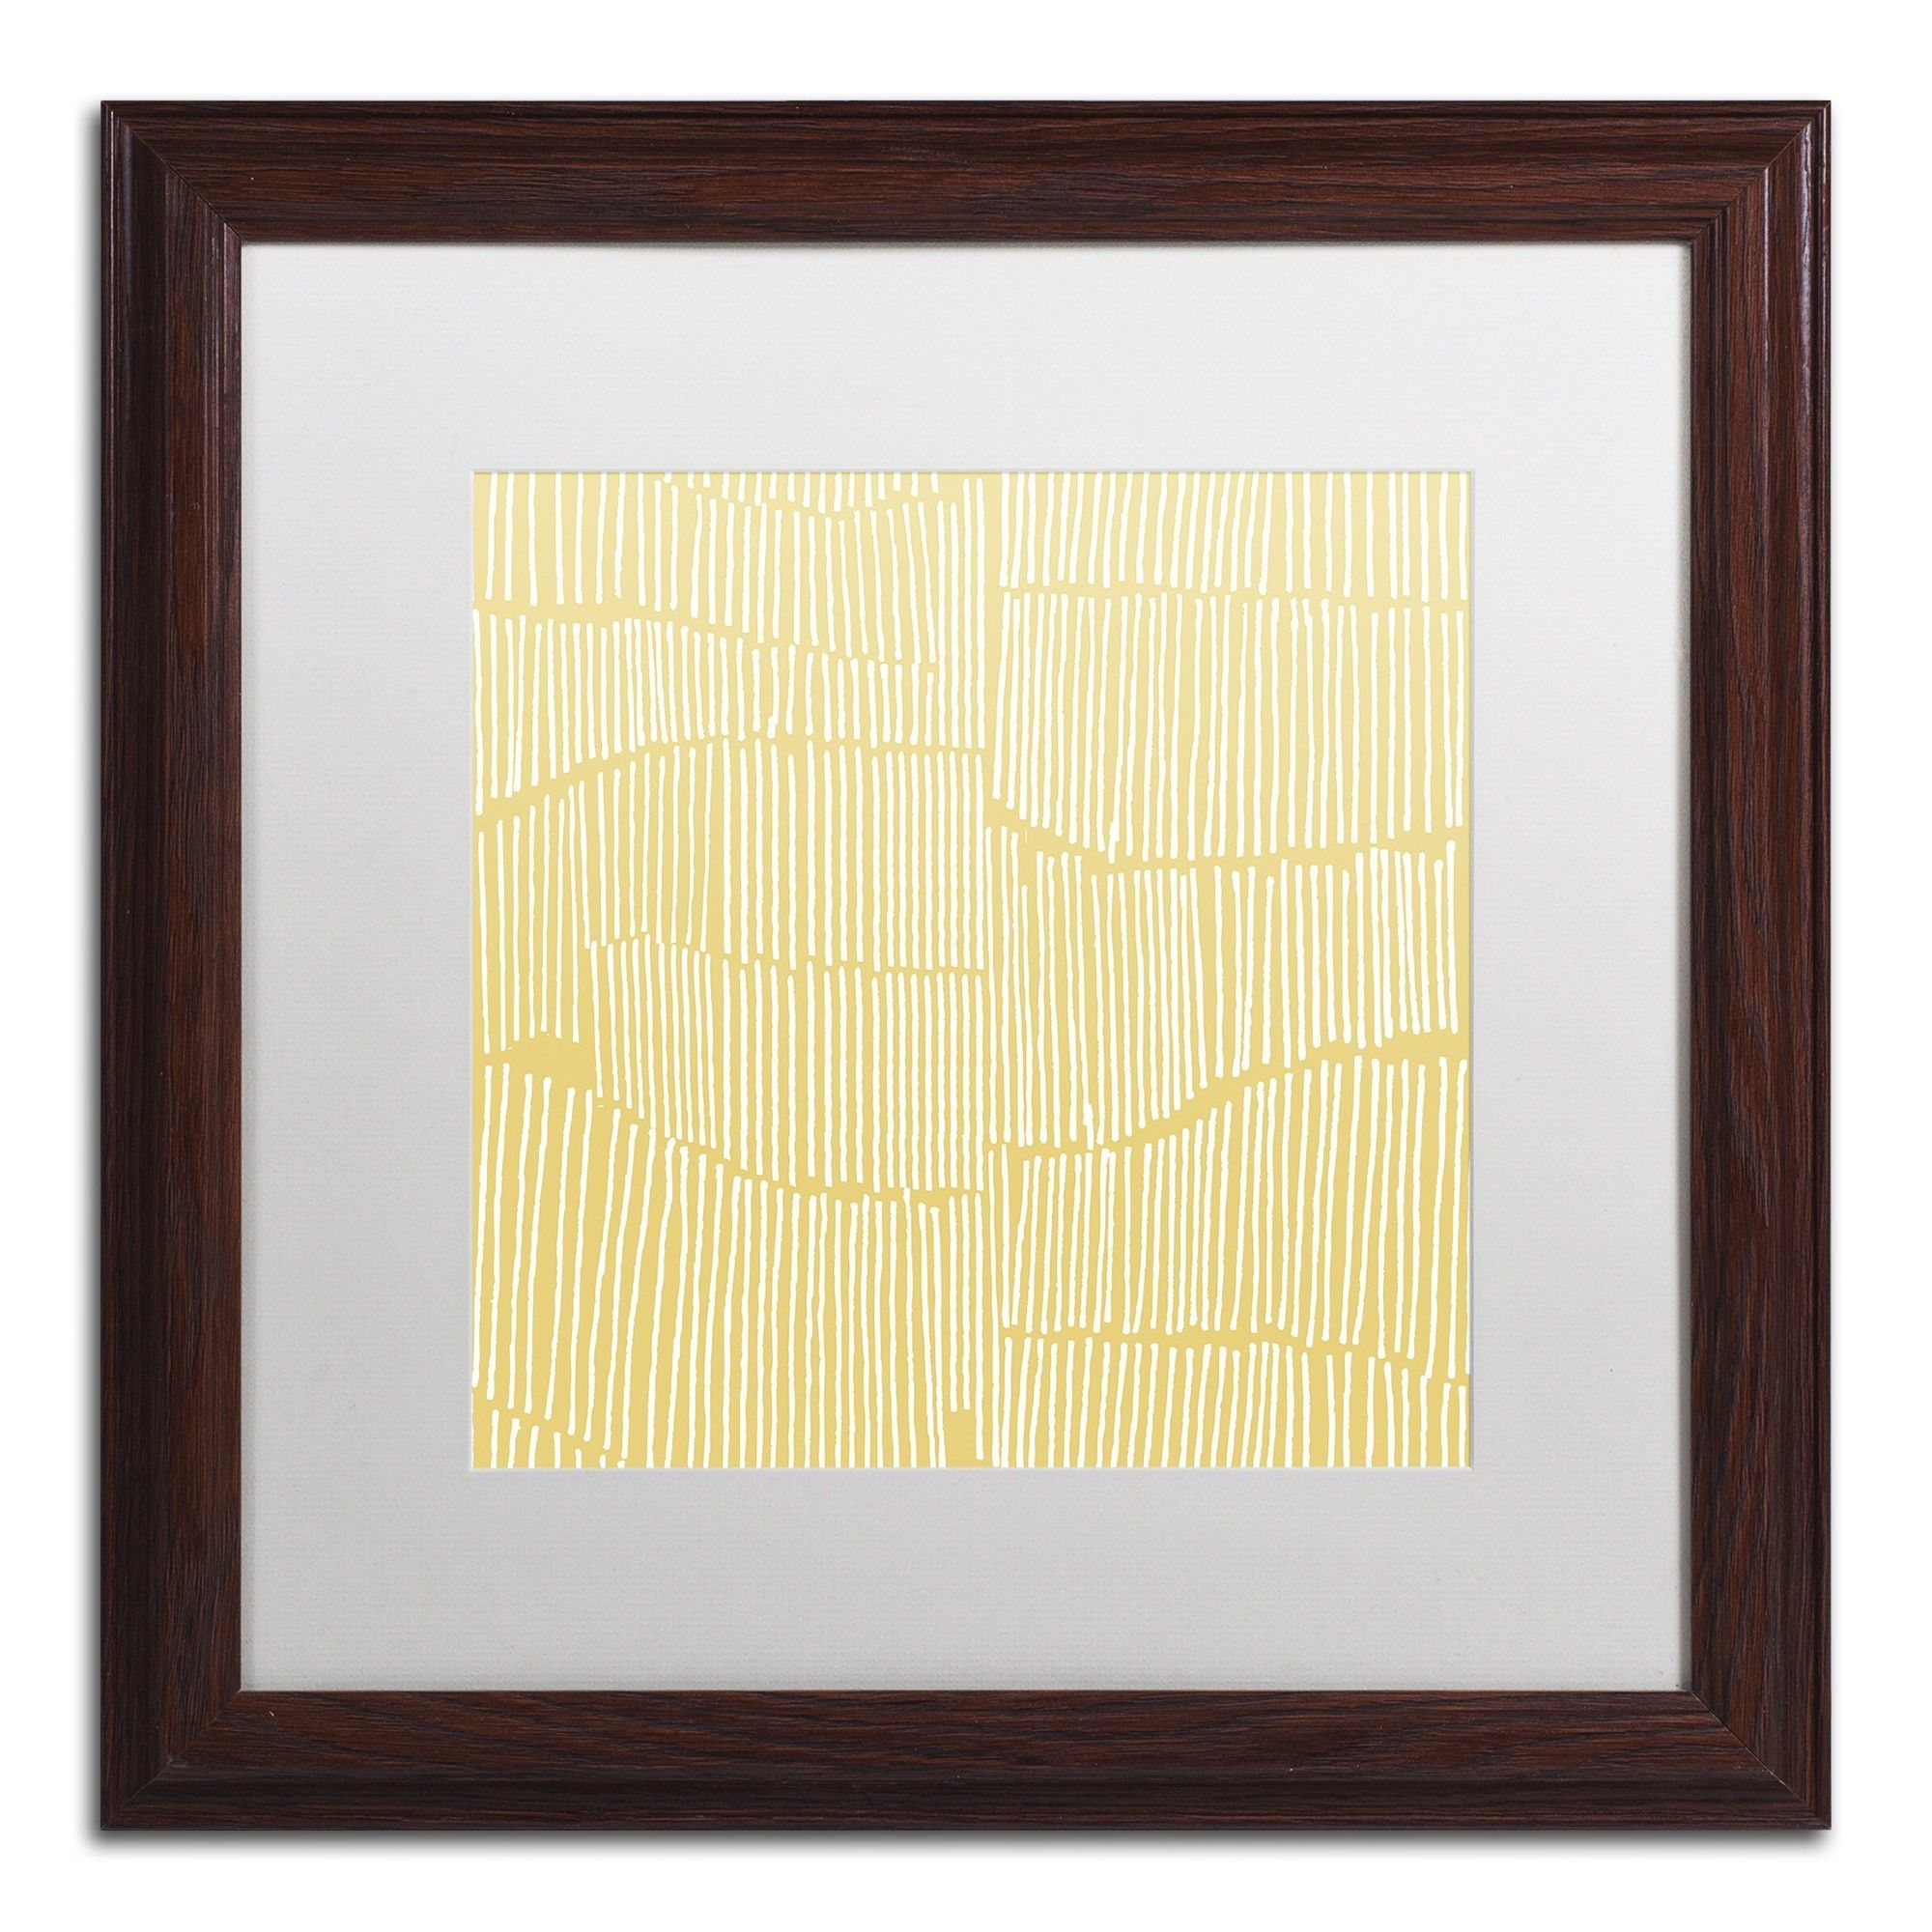 Spaces Between II by Kavan & Co Matted Framed Graphic Art   Graphic ...